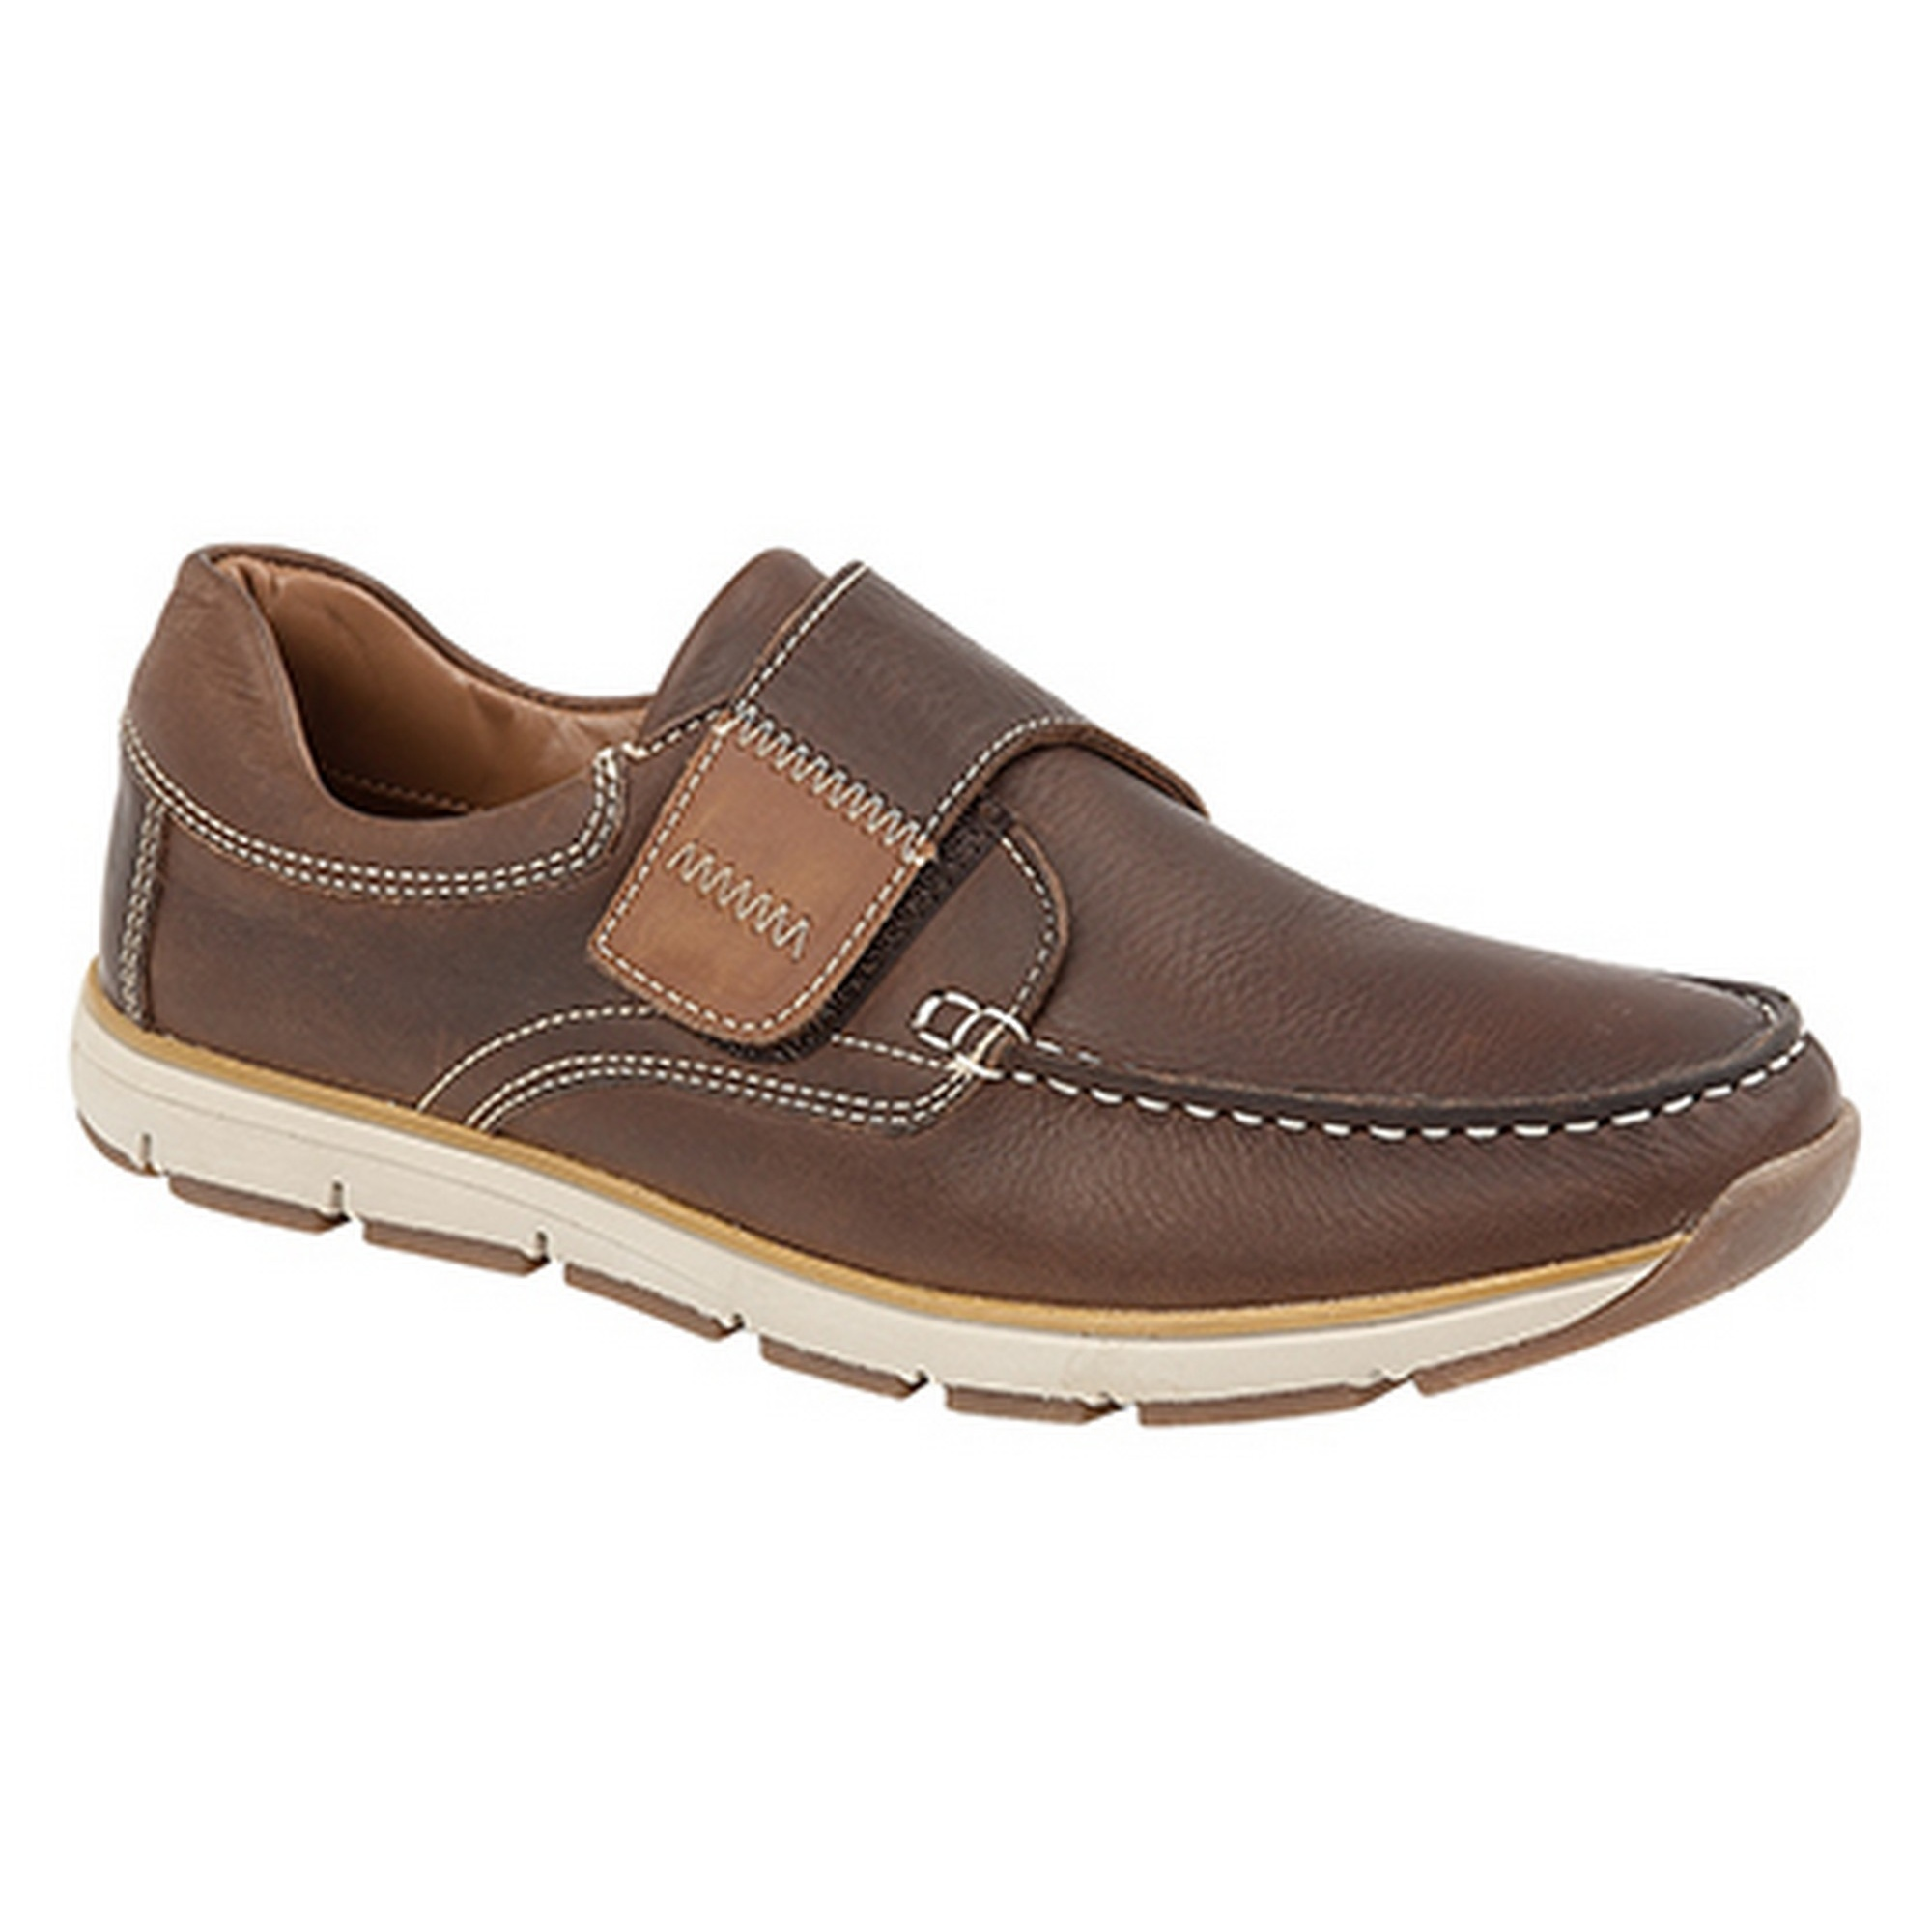 61f27cc0a687 ... Roamers Superlight Mens Touch Fastening Moccasin Leisure Shoes Shoes  Shoes (DF1370) b5a3ad